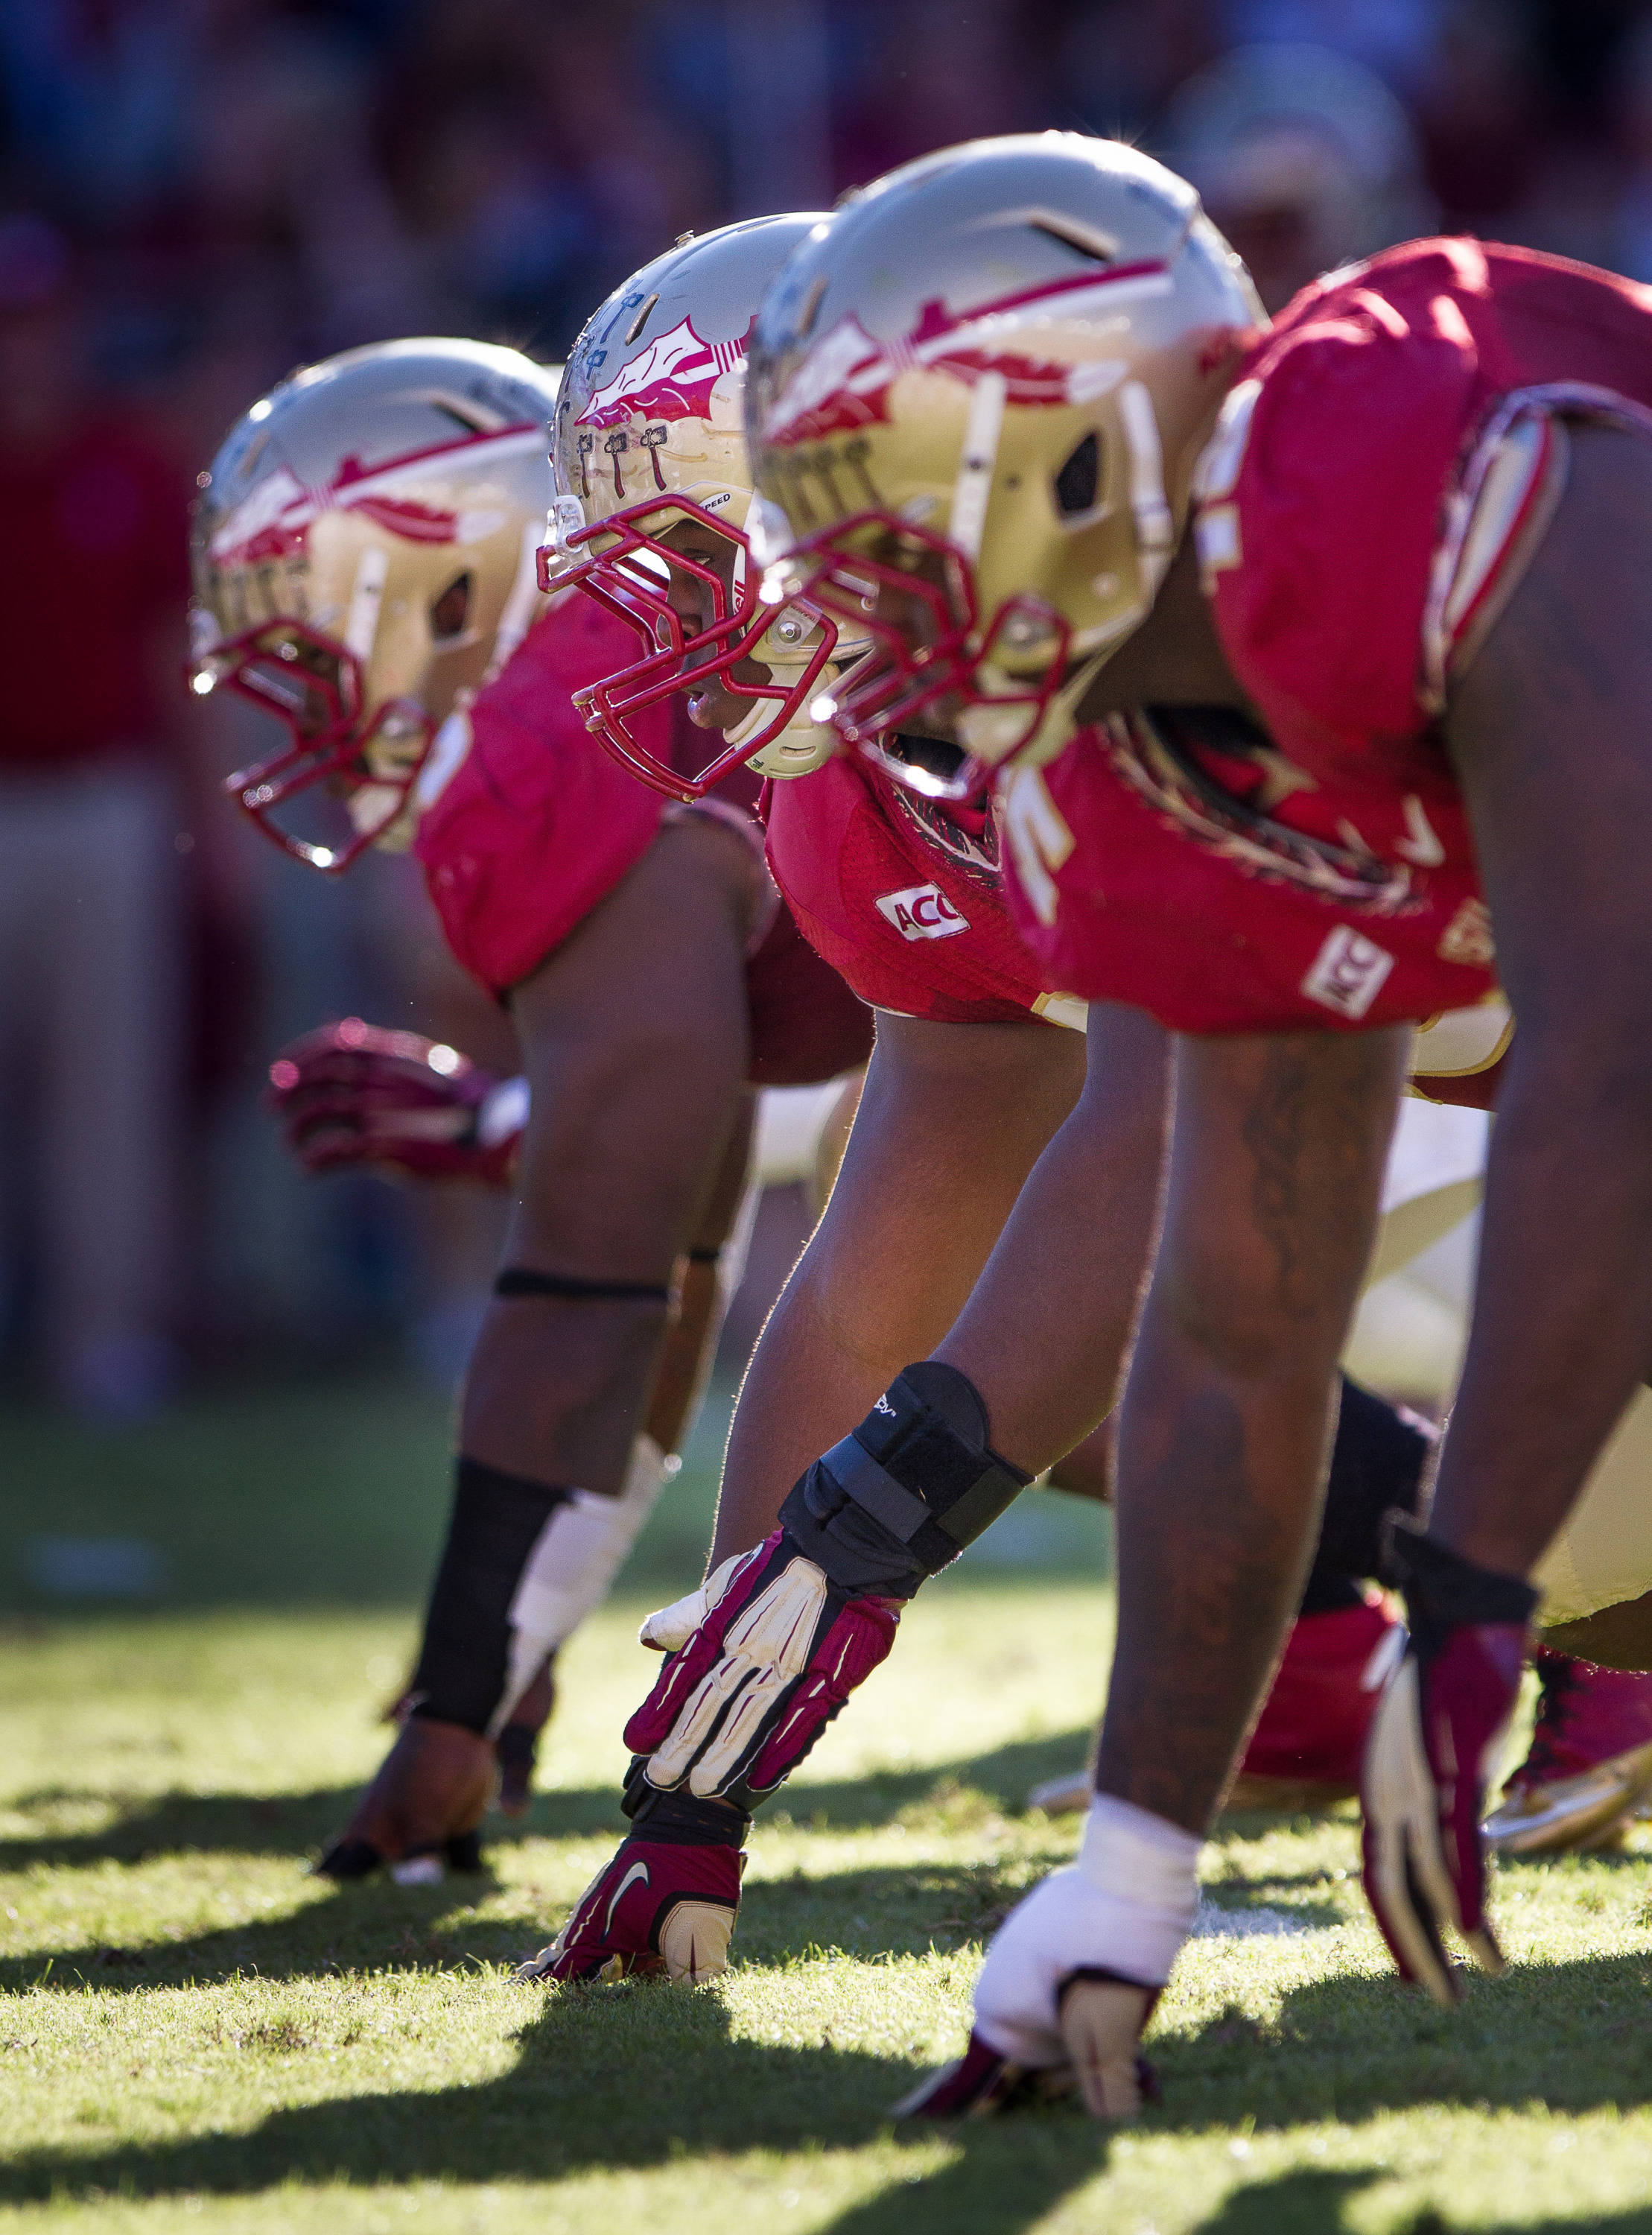 FSU's defensive line waits for the snap during FSU Football's 49-17 win over NC State on Saturday, October 26, 2013 in Tallahassee, Fla. Photo by Michael Schwarz.